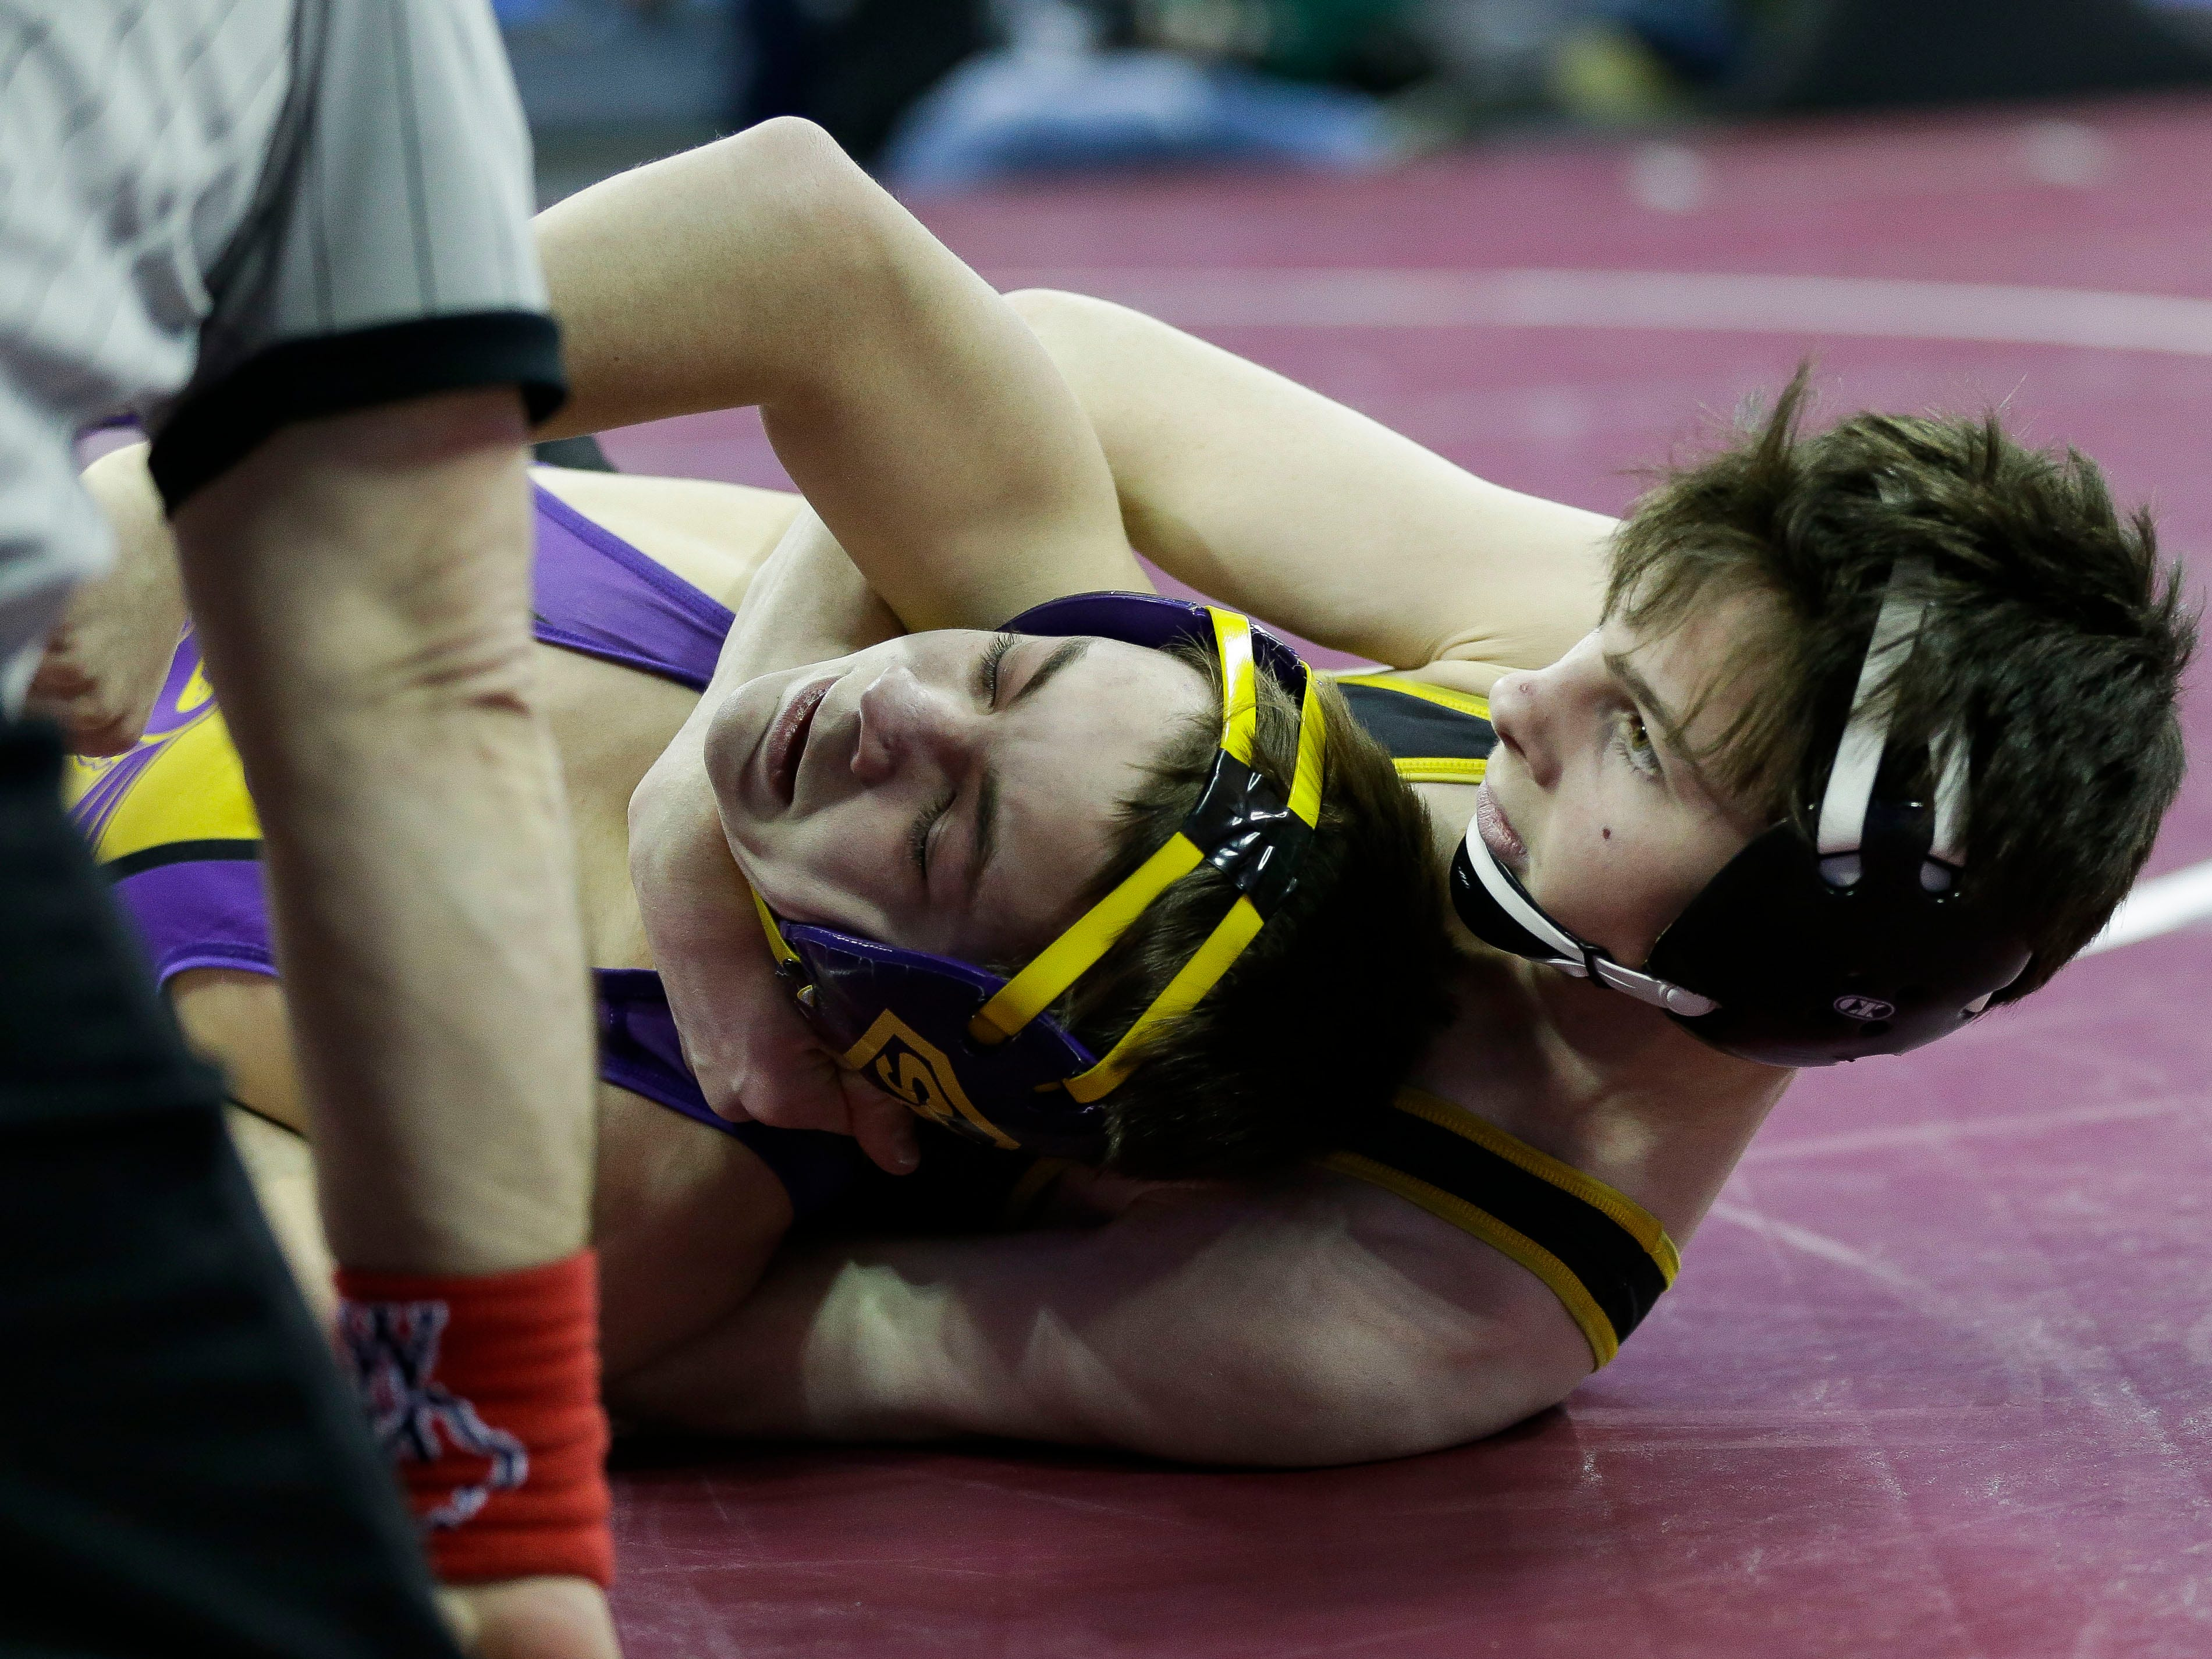 Sheboygan Falls' Cole Mattek is pinned by Northwestern's Markus Brown in a Division 2 113-pound preliminary match during the WIAA state wrestling tournament on Thursday, February 21, 2019, at the Kohl Center in Madison, Wis.